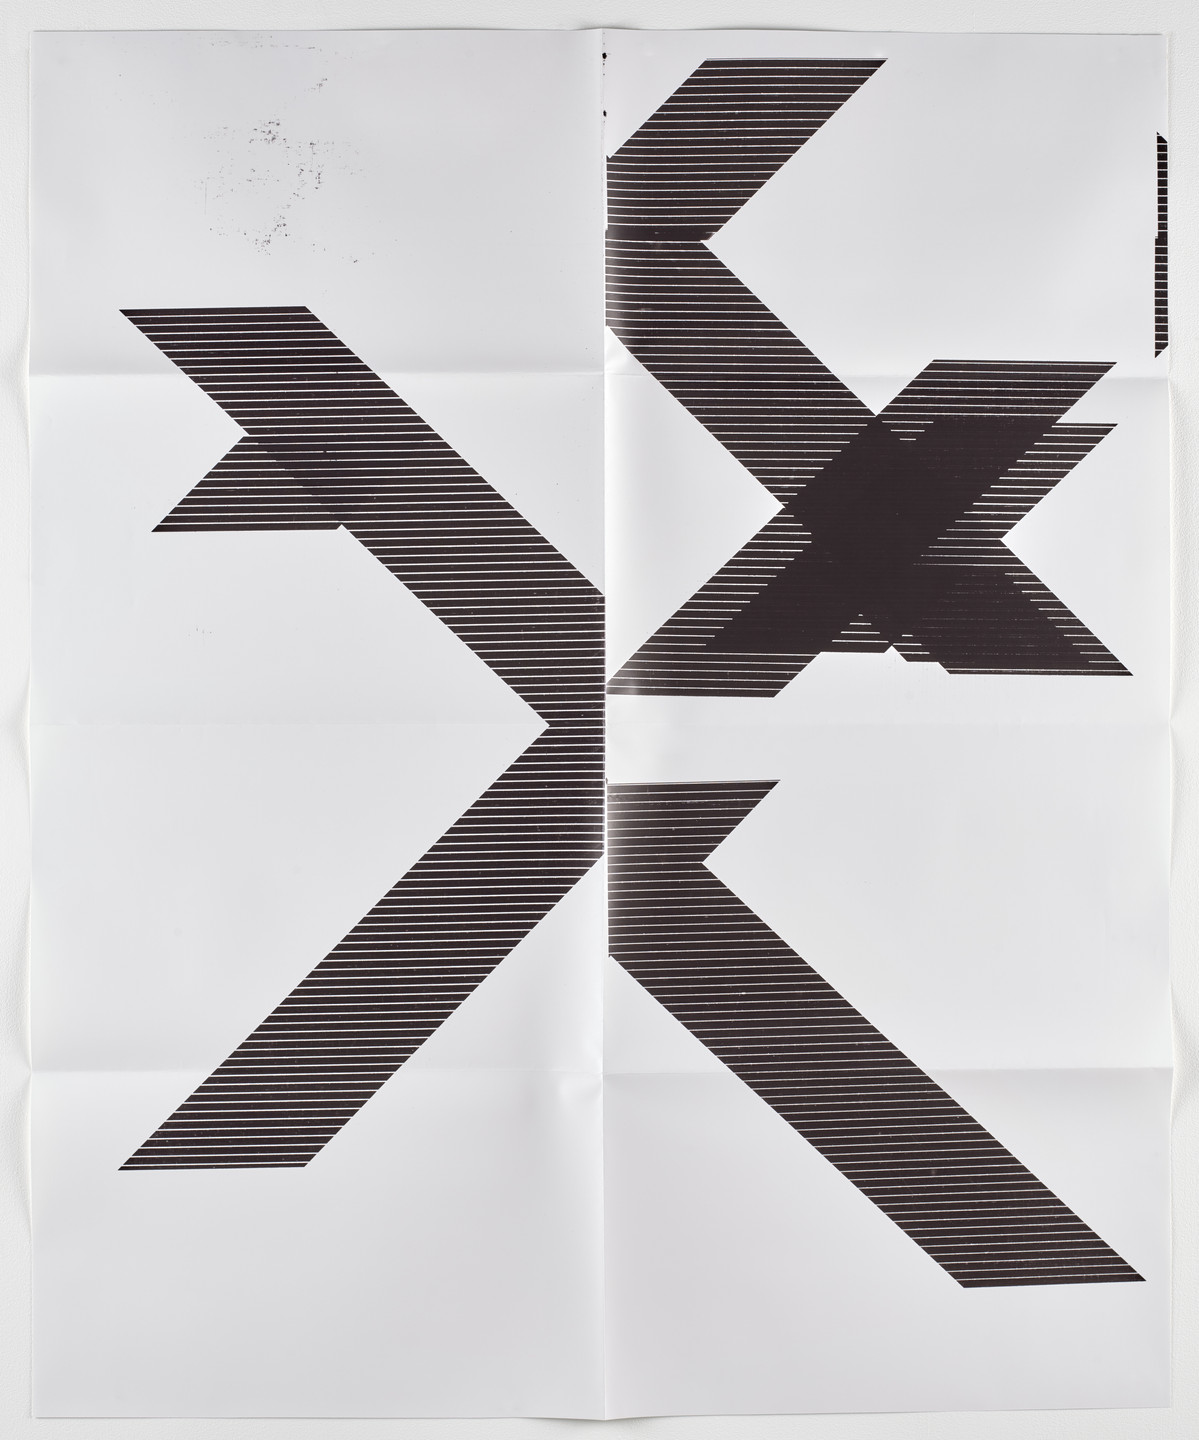 Wade Guyton. X Poster (Untitled, 2007, Epson UltraChrome inkjet on linen, 84 x 69 inches, WG1210). 2018